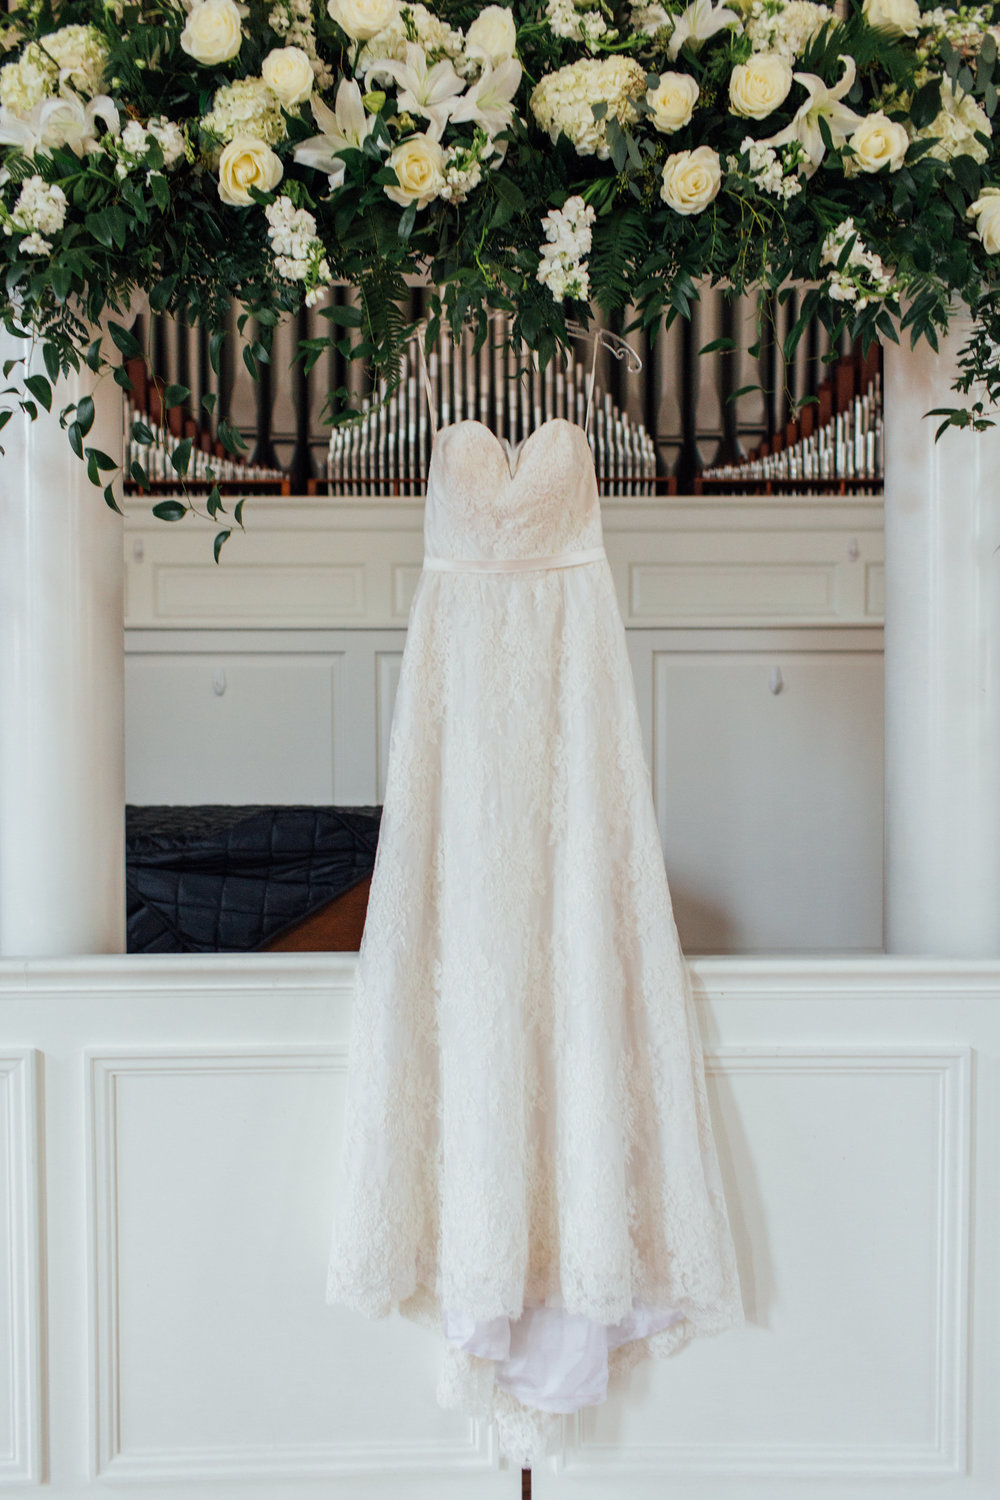 hanging wedding dress in birmingham al